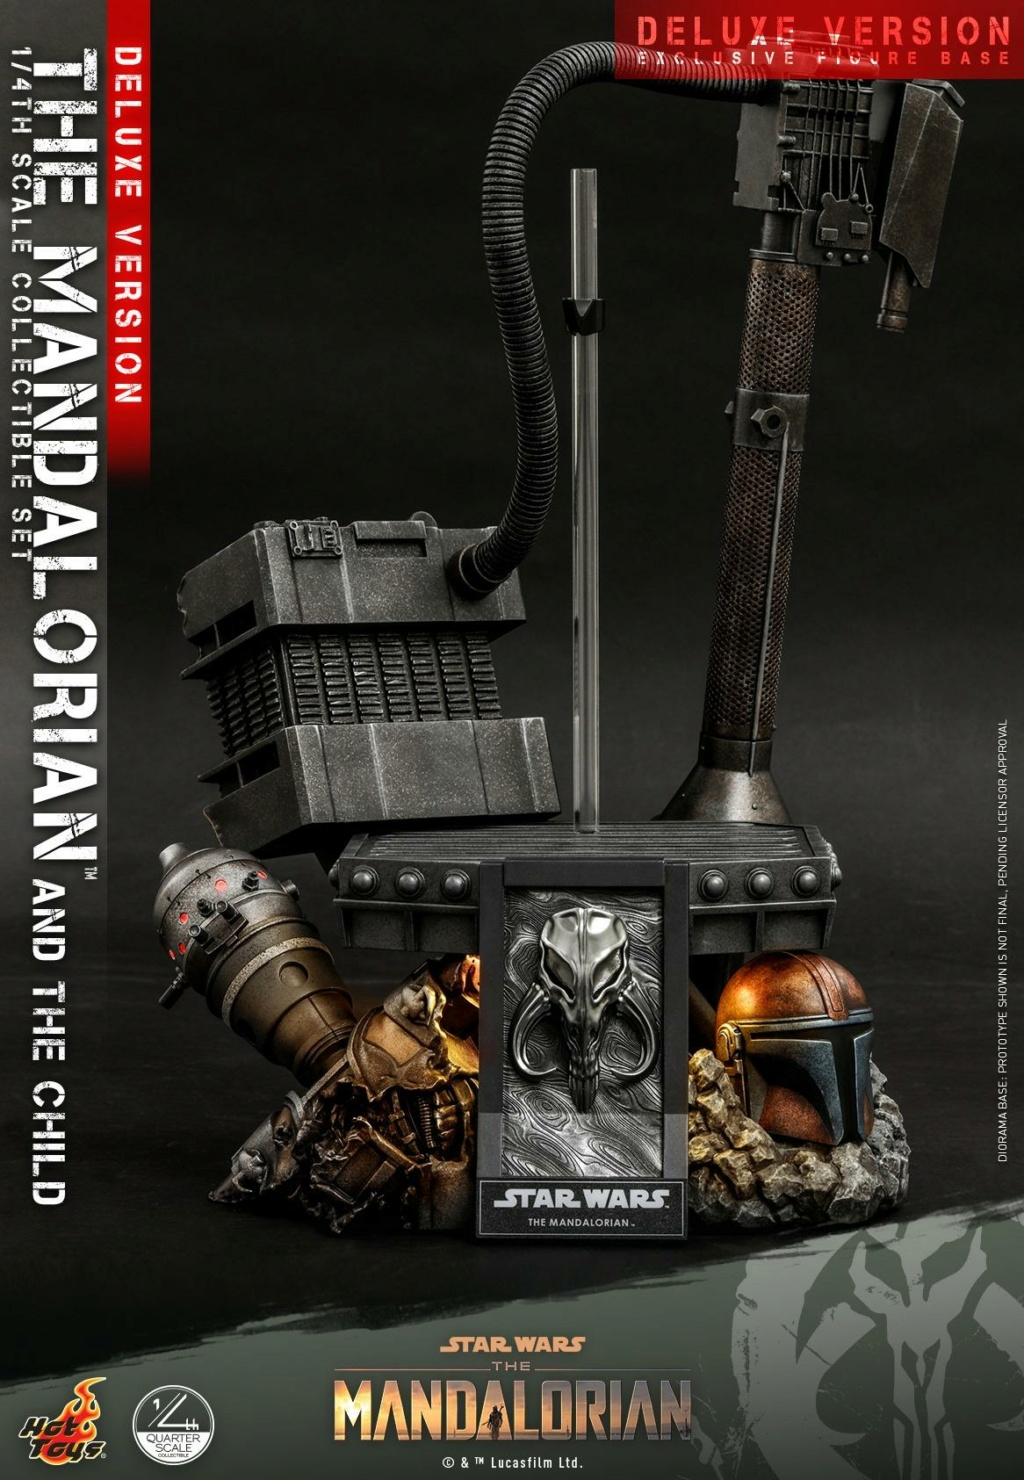 The Mandalorian & The Child Set (Deluxe) 1/4th - Hot Toys 0833